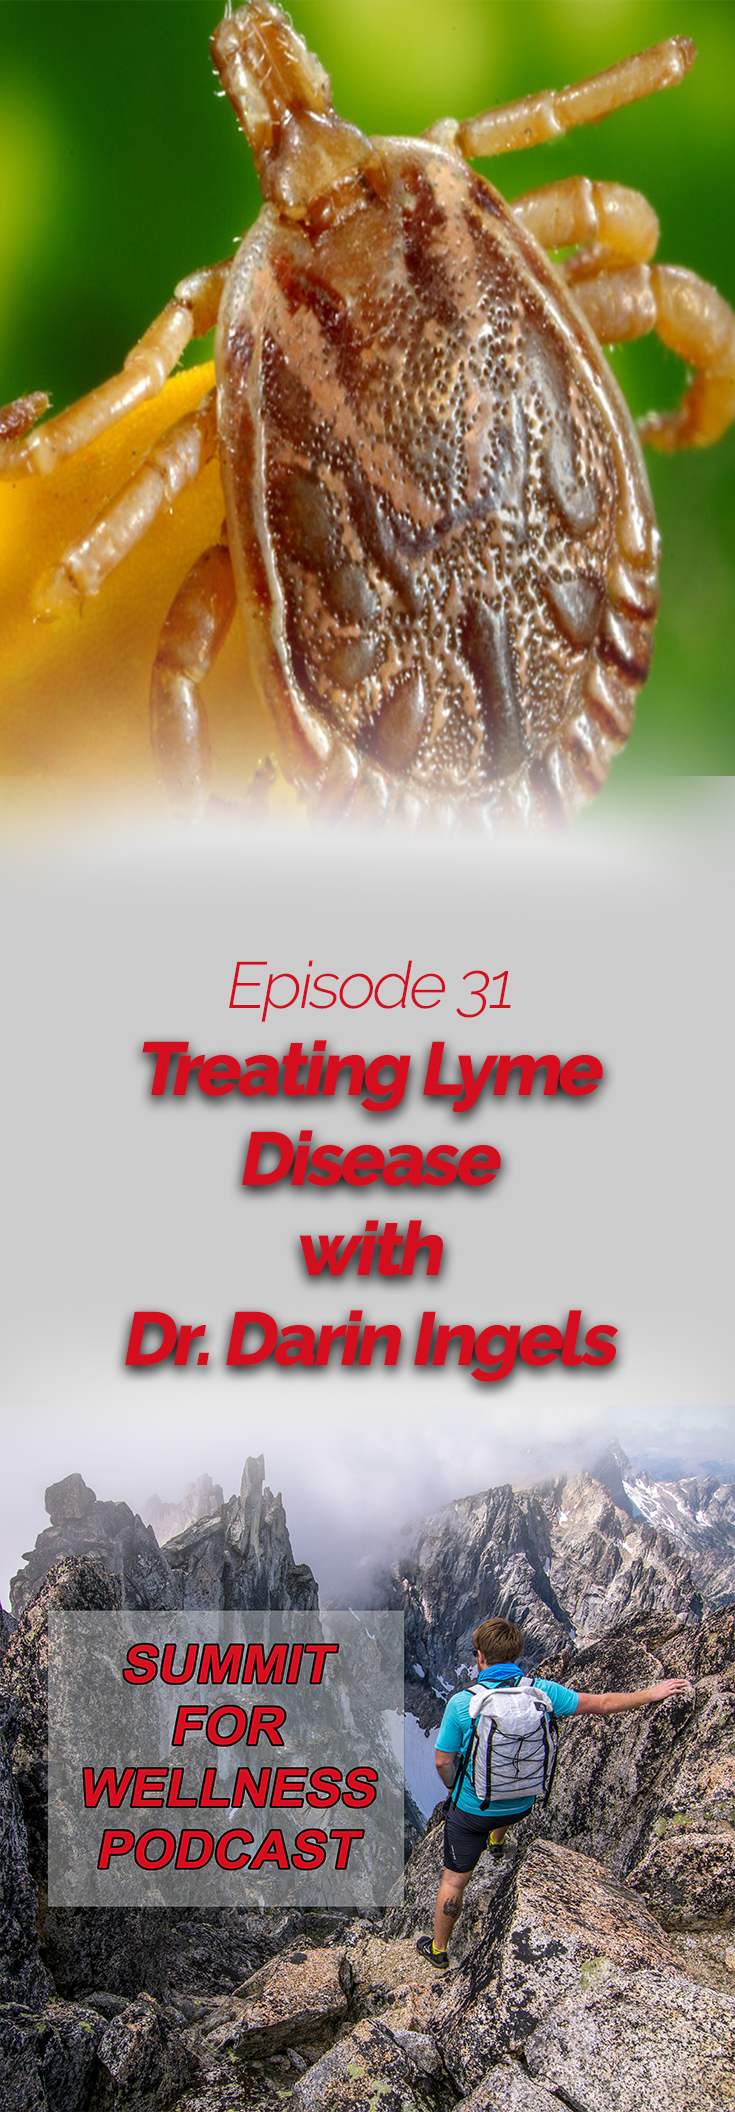 Dr Darin Ingels discusses ways to treat lyme disease